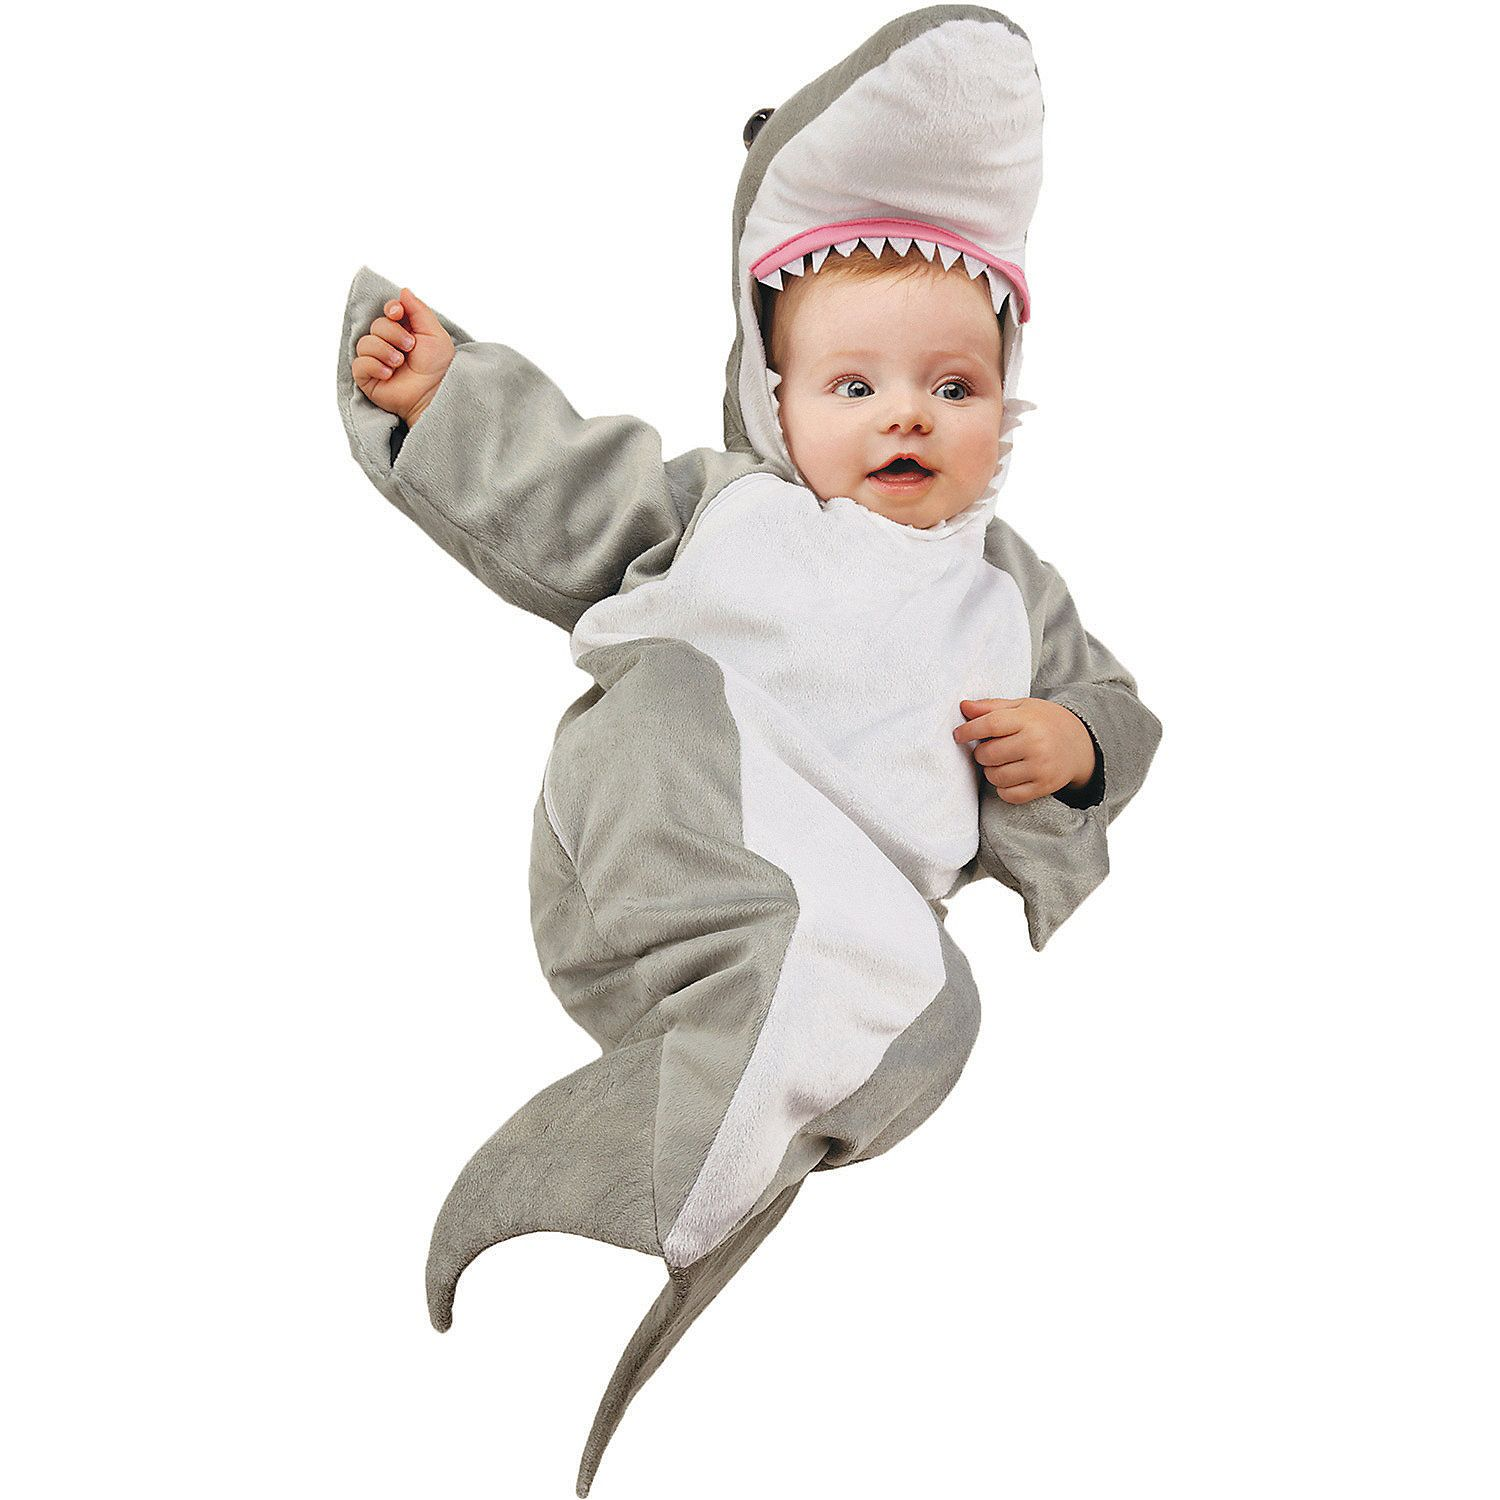 baby shark bunting costume 0 6 months